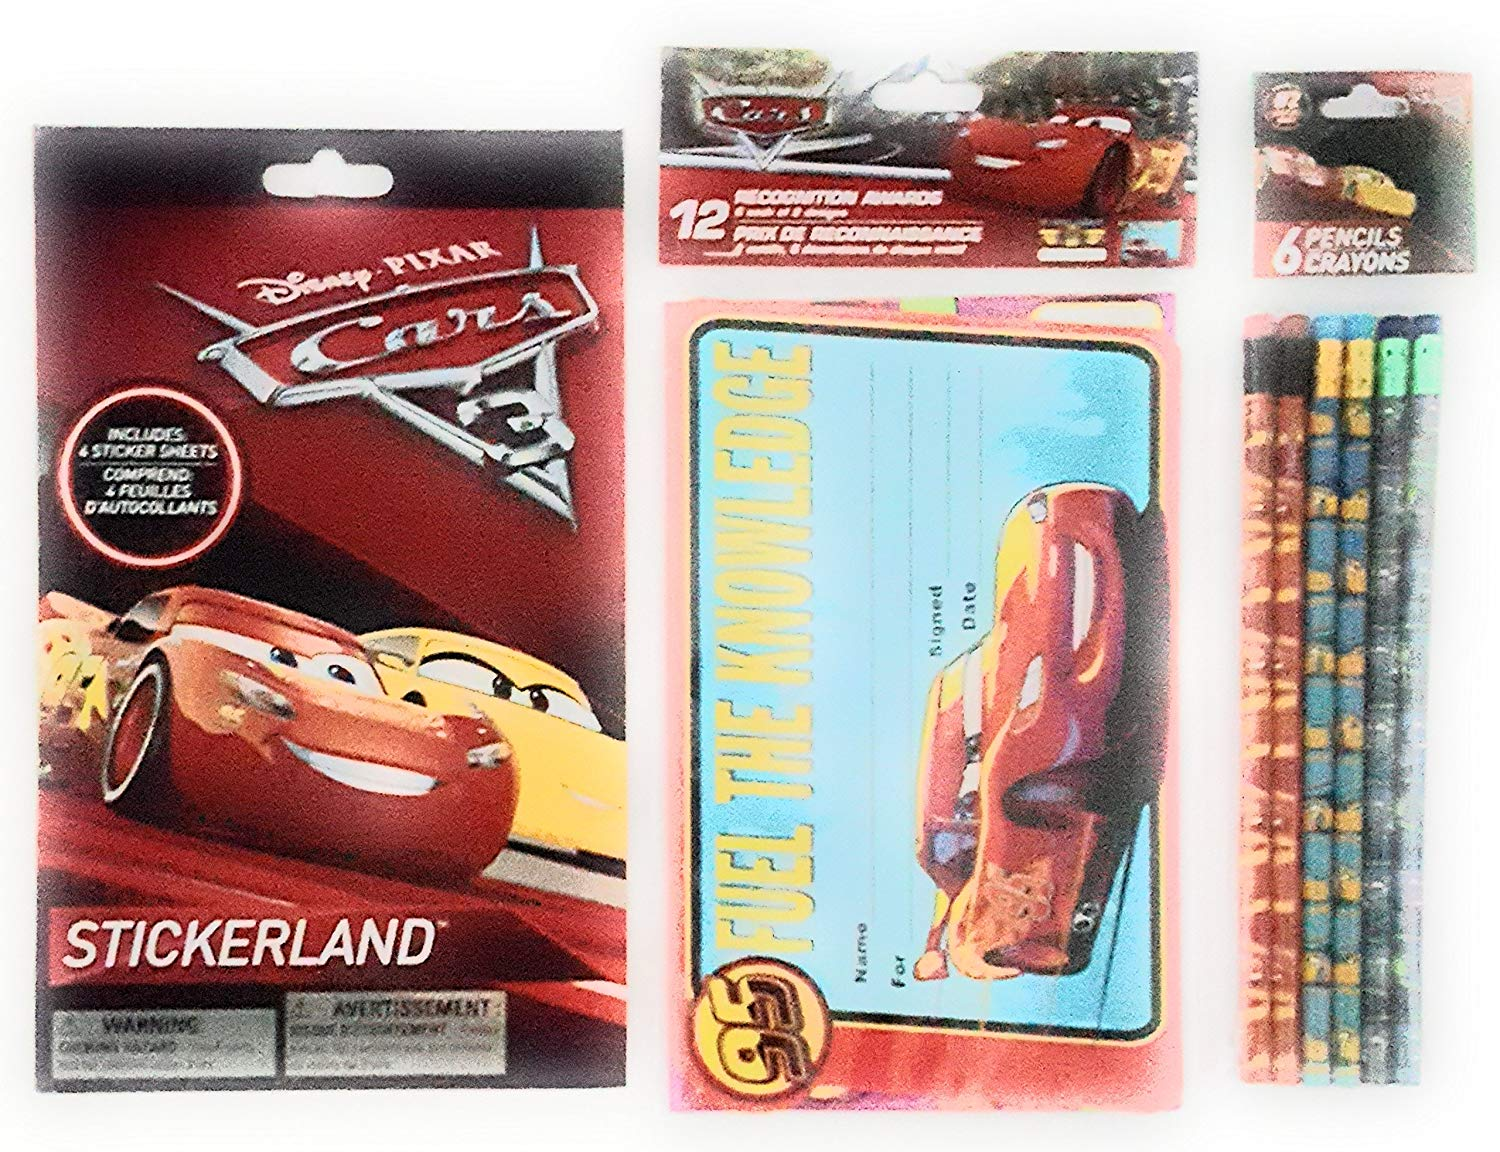 Back to School Pixar Cars Toddler Pre-School Elementary School Supplies Classroom Recognition Awards Pencils Stickers